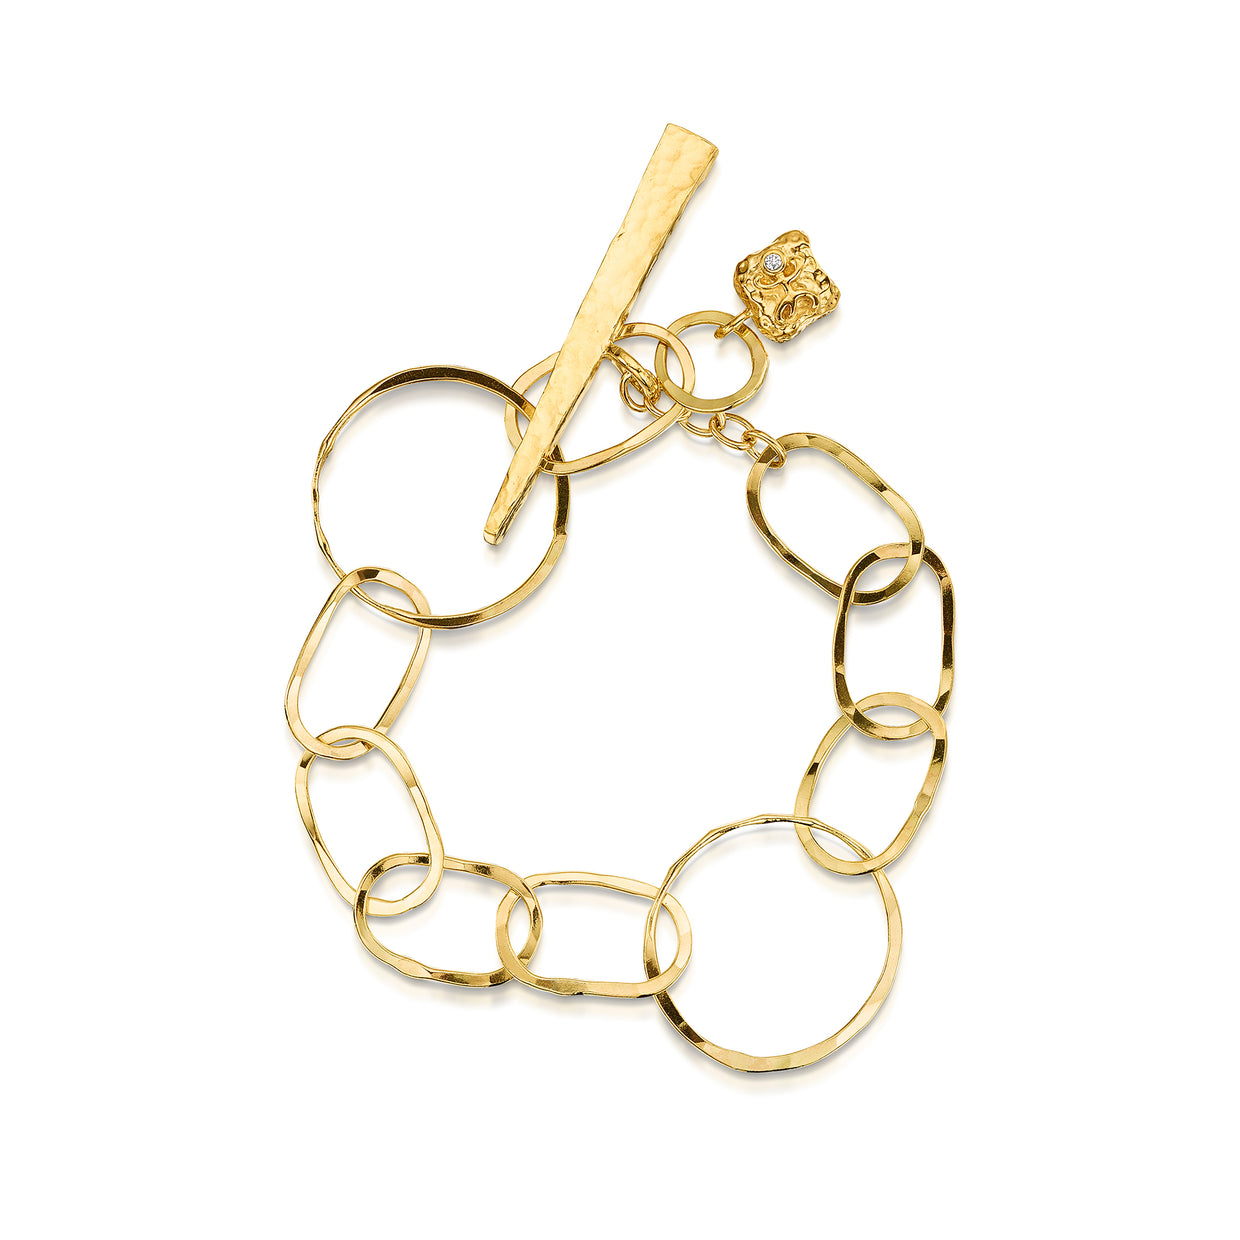 Hamilton & Inches Oval Link Bracelet in 9ct Yellow Gold - Hamilton & Inches